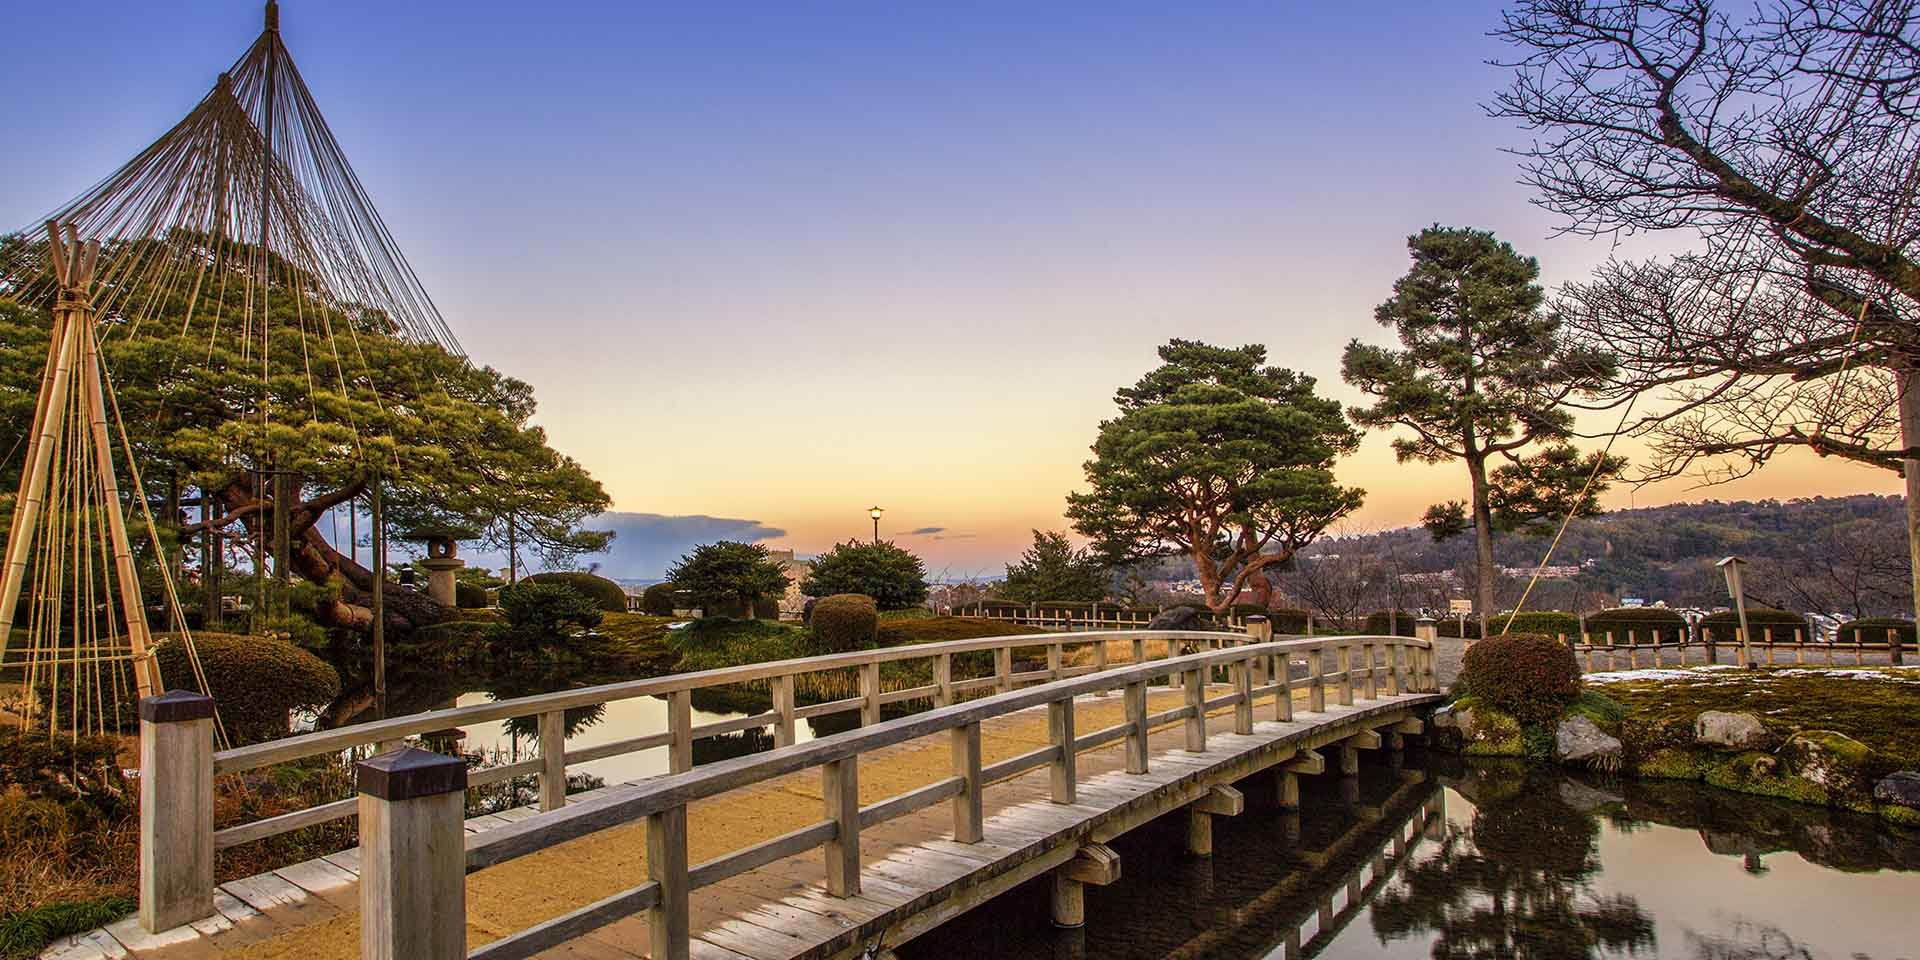 All Japan Tours Reviews